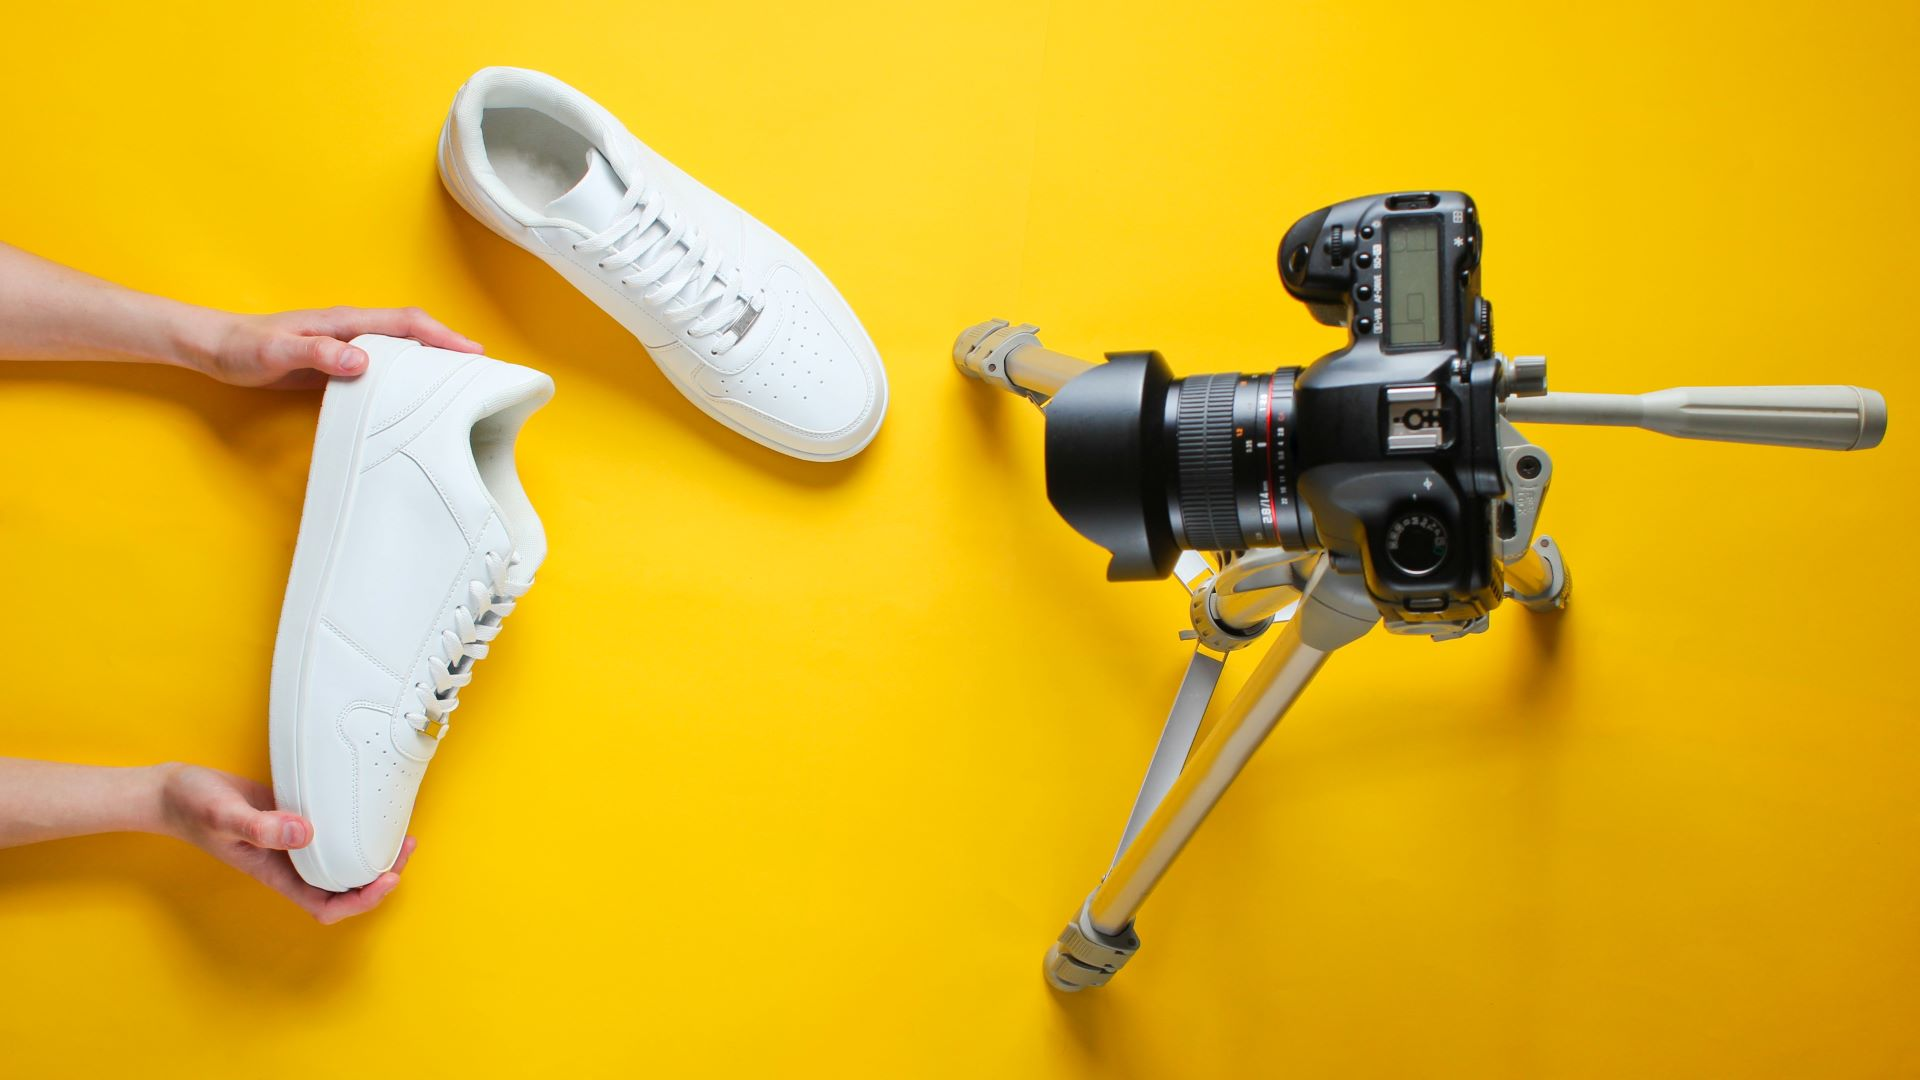 Camera filming a video to improve the sales process for sneakers